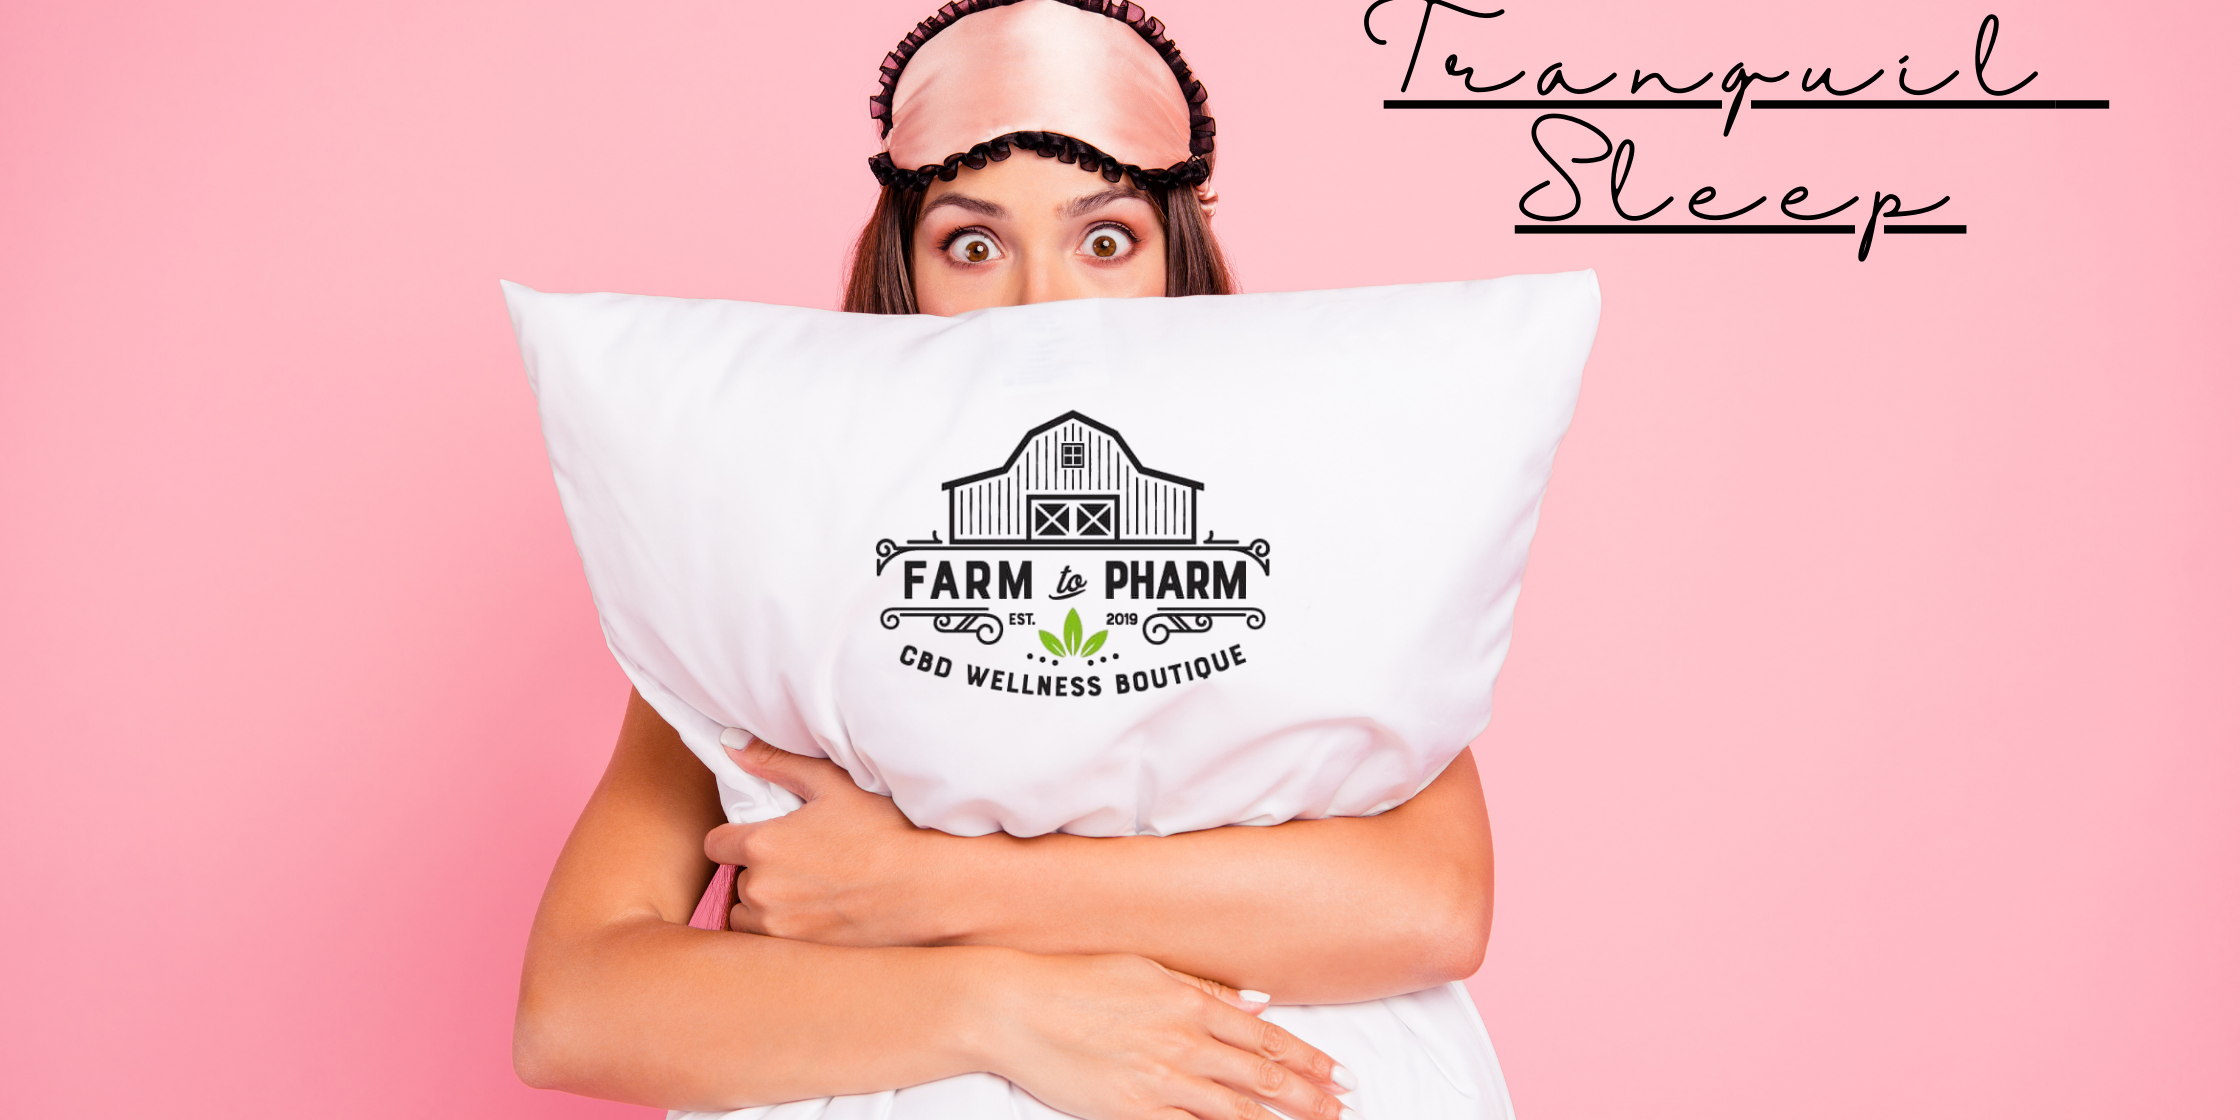 farm to pharm cbd wellness boutique sleep blog banner